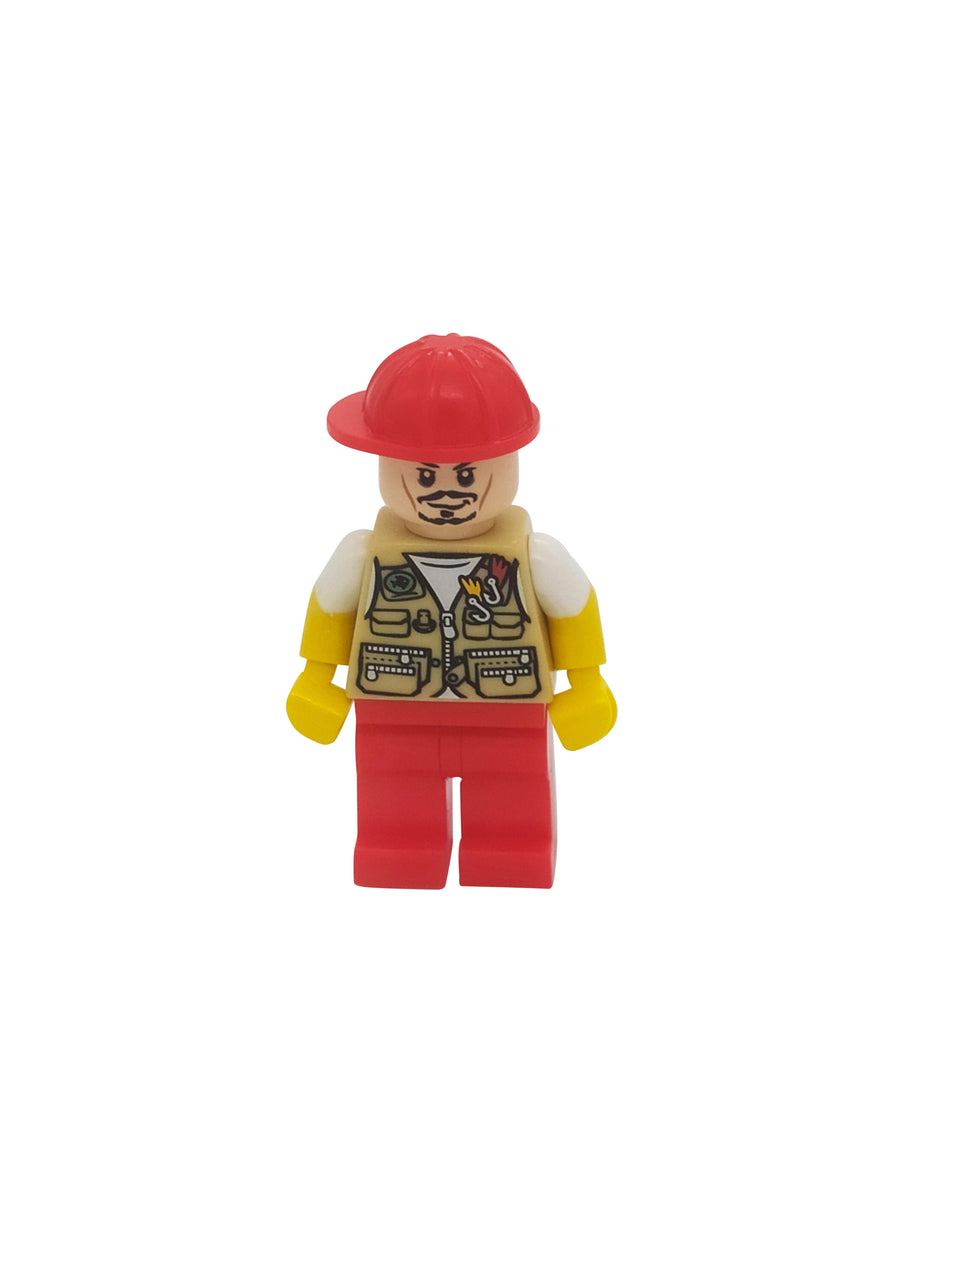 A cool figure with a fishing shirt and red hat - Lego